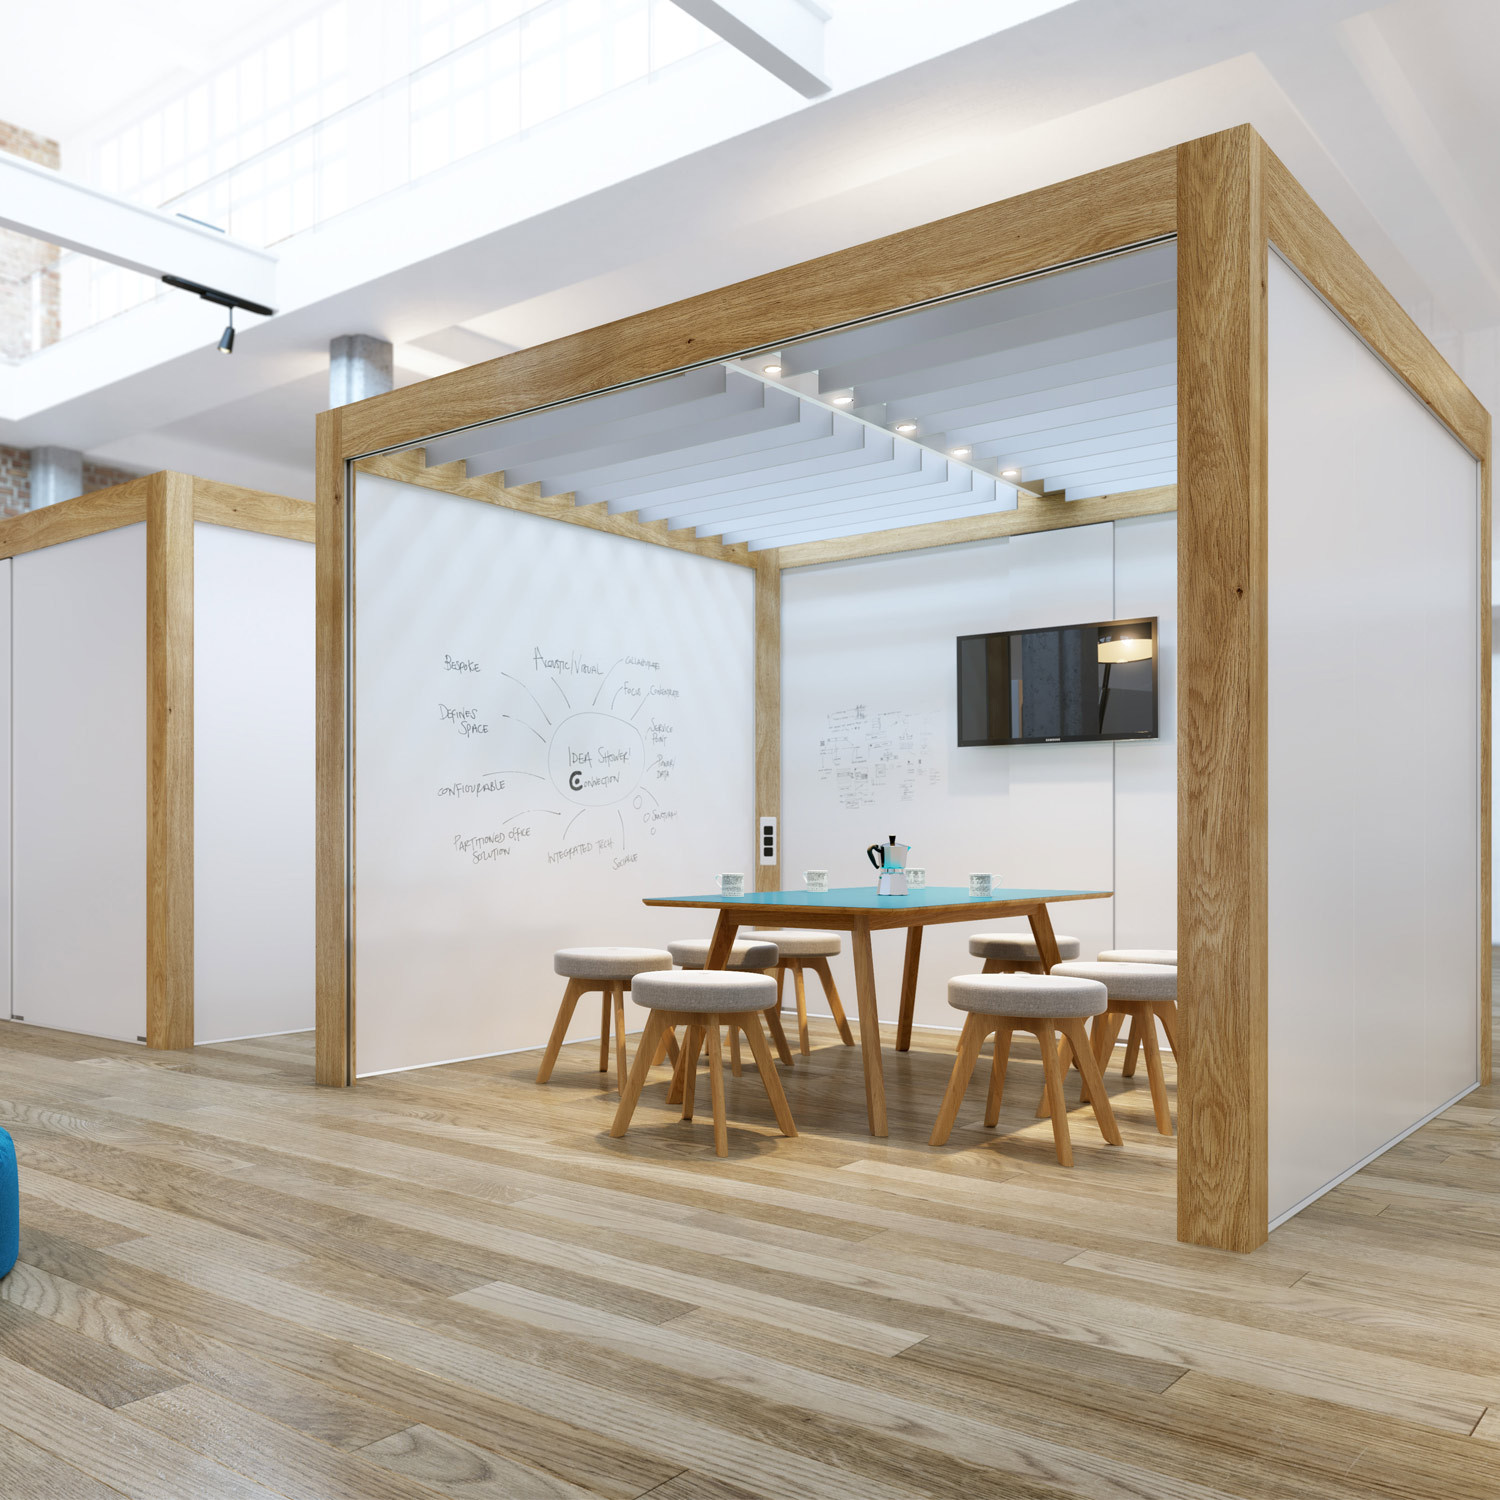 Rooms: Temporary Office Meeting Room Solution